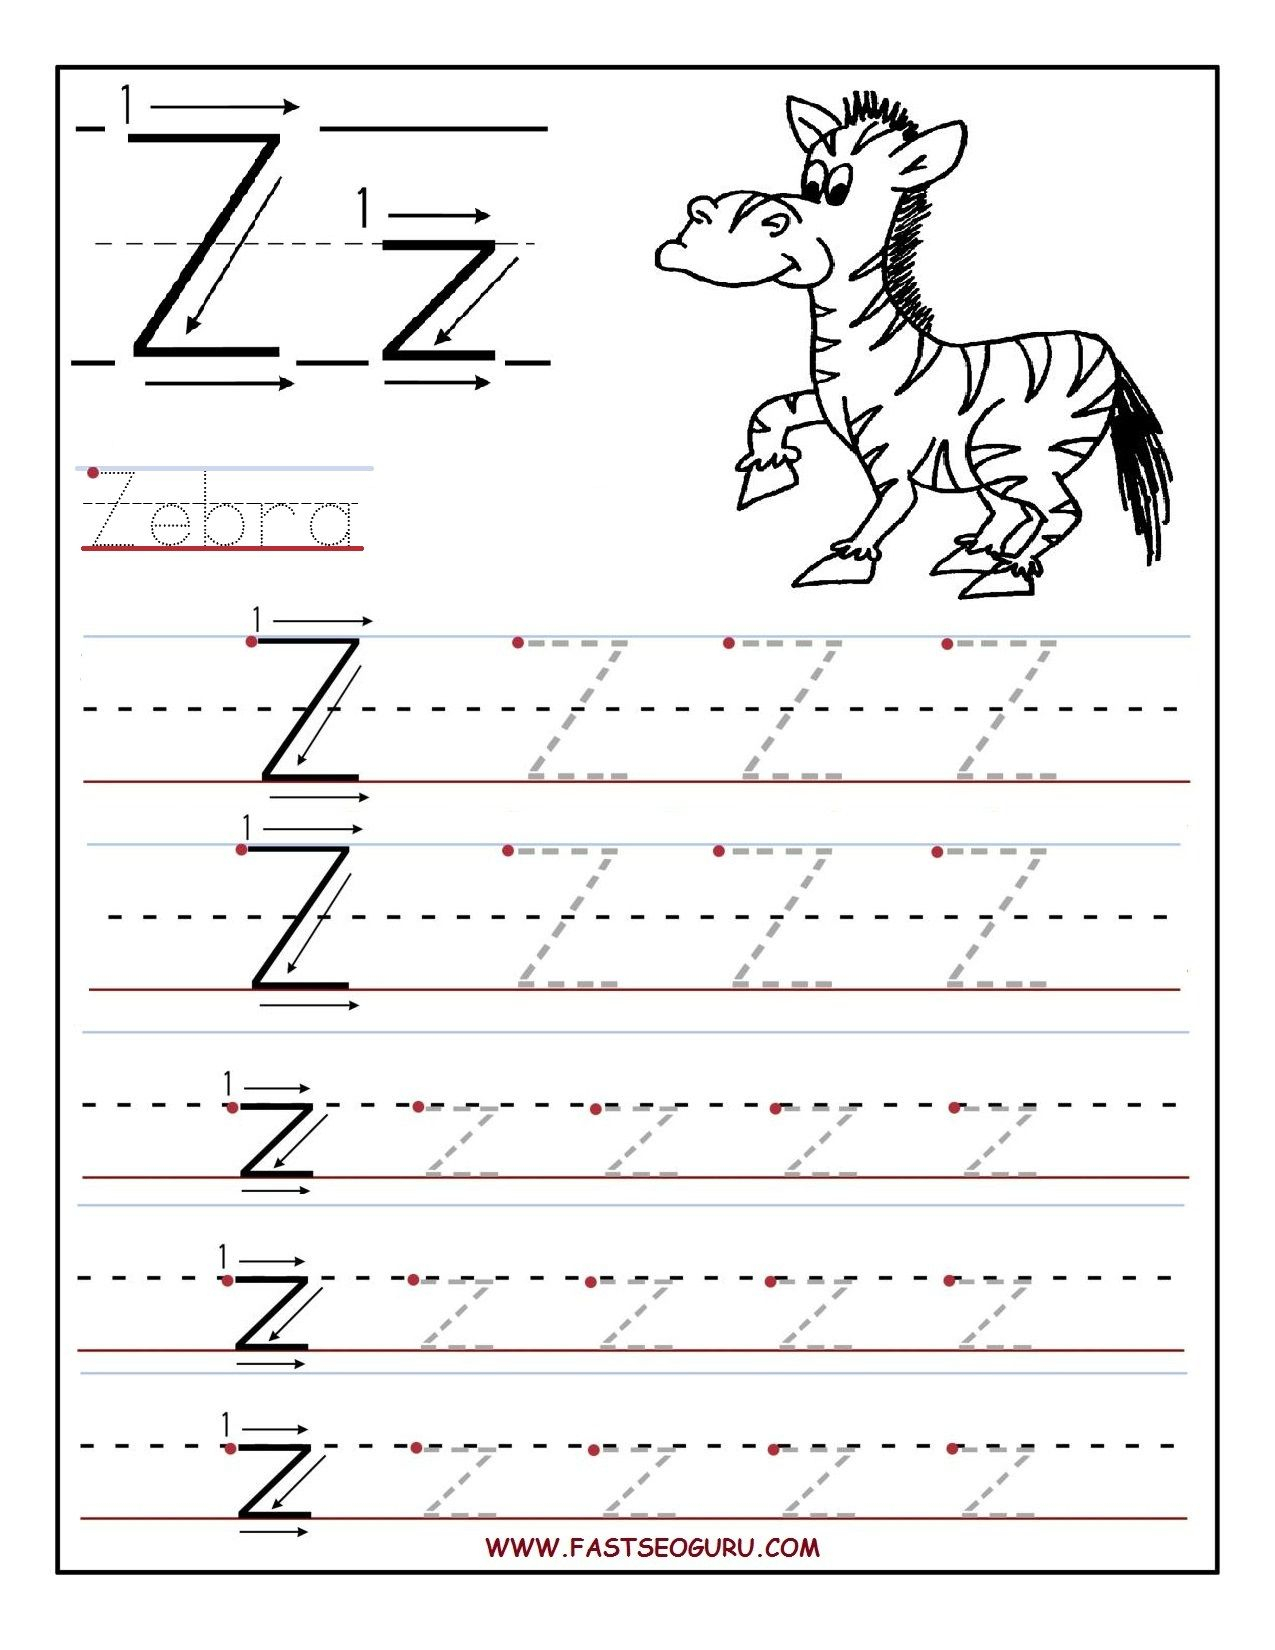 Pinvilfran Gason On Decor | Letter Tracing Worksheets pertaining to Tracing Letter Z Worksheets